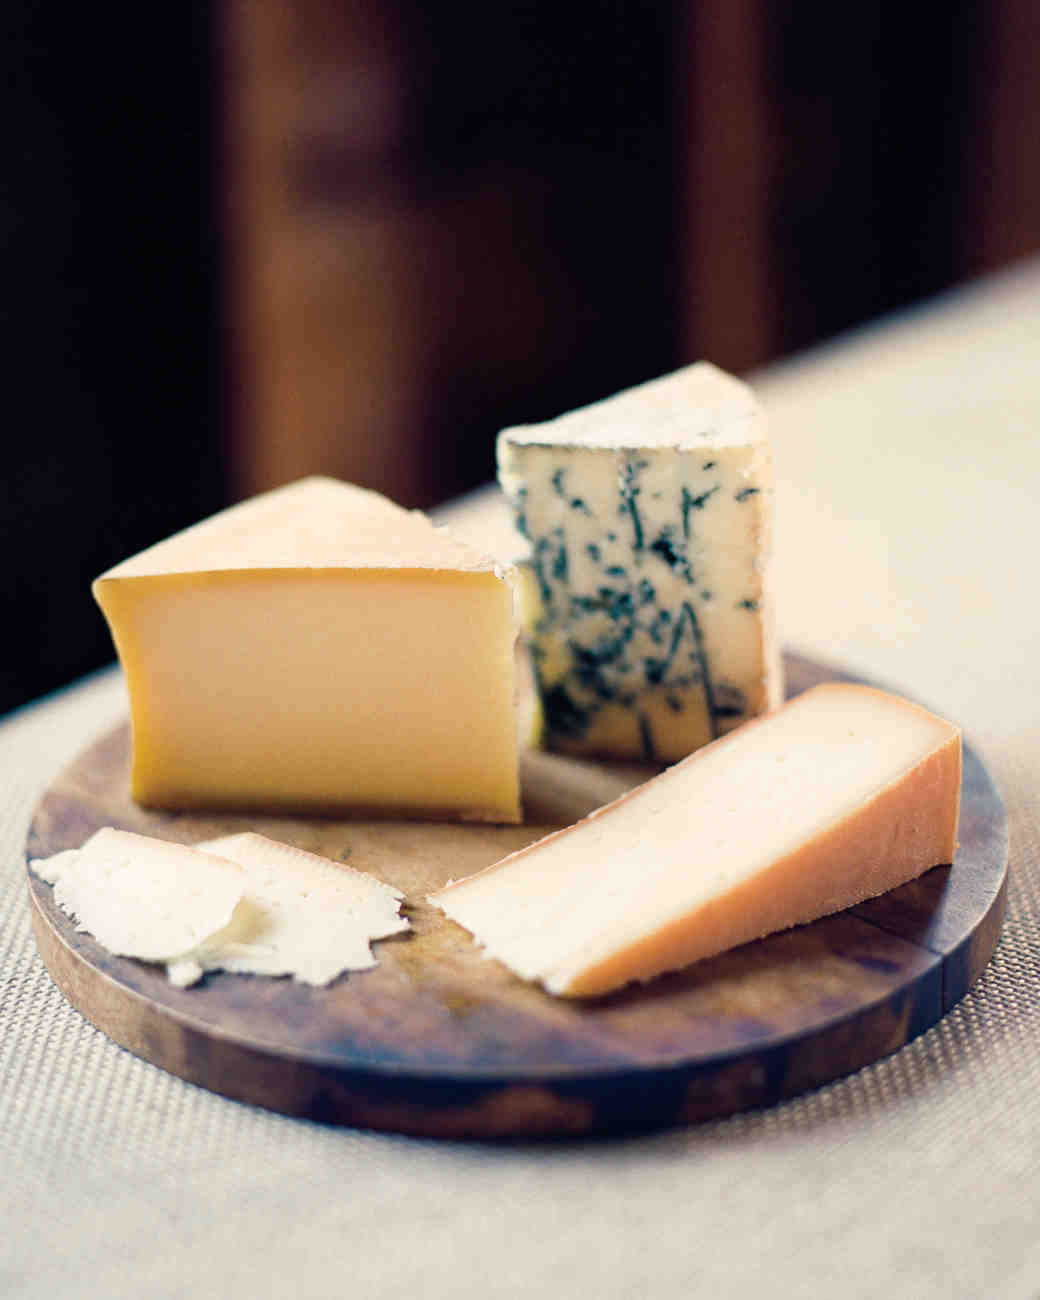 cheese-mwd107926.jpg